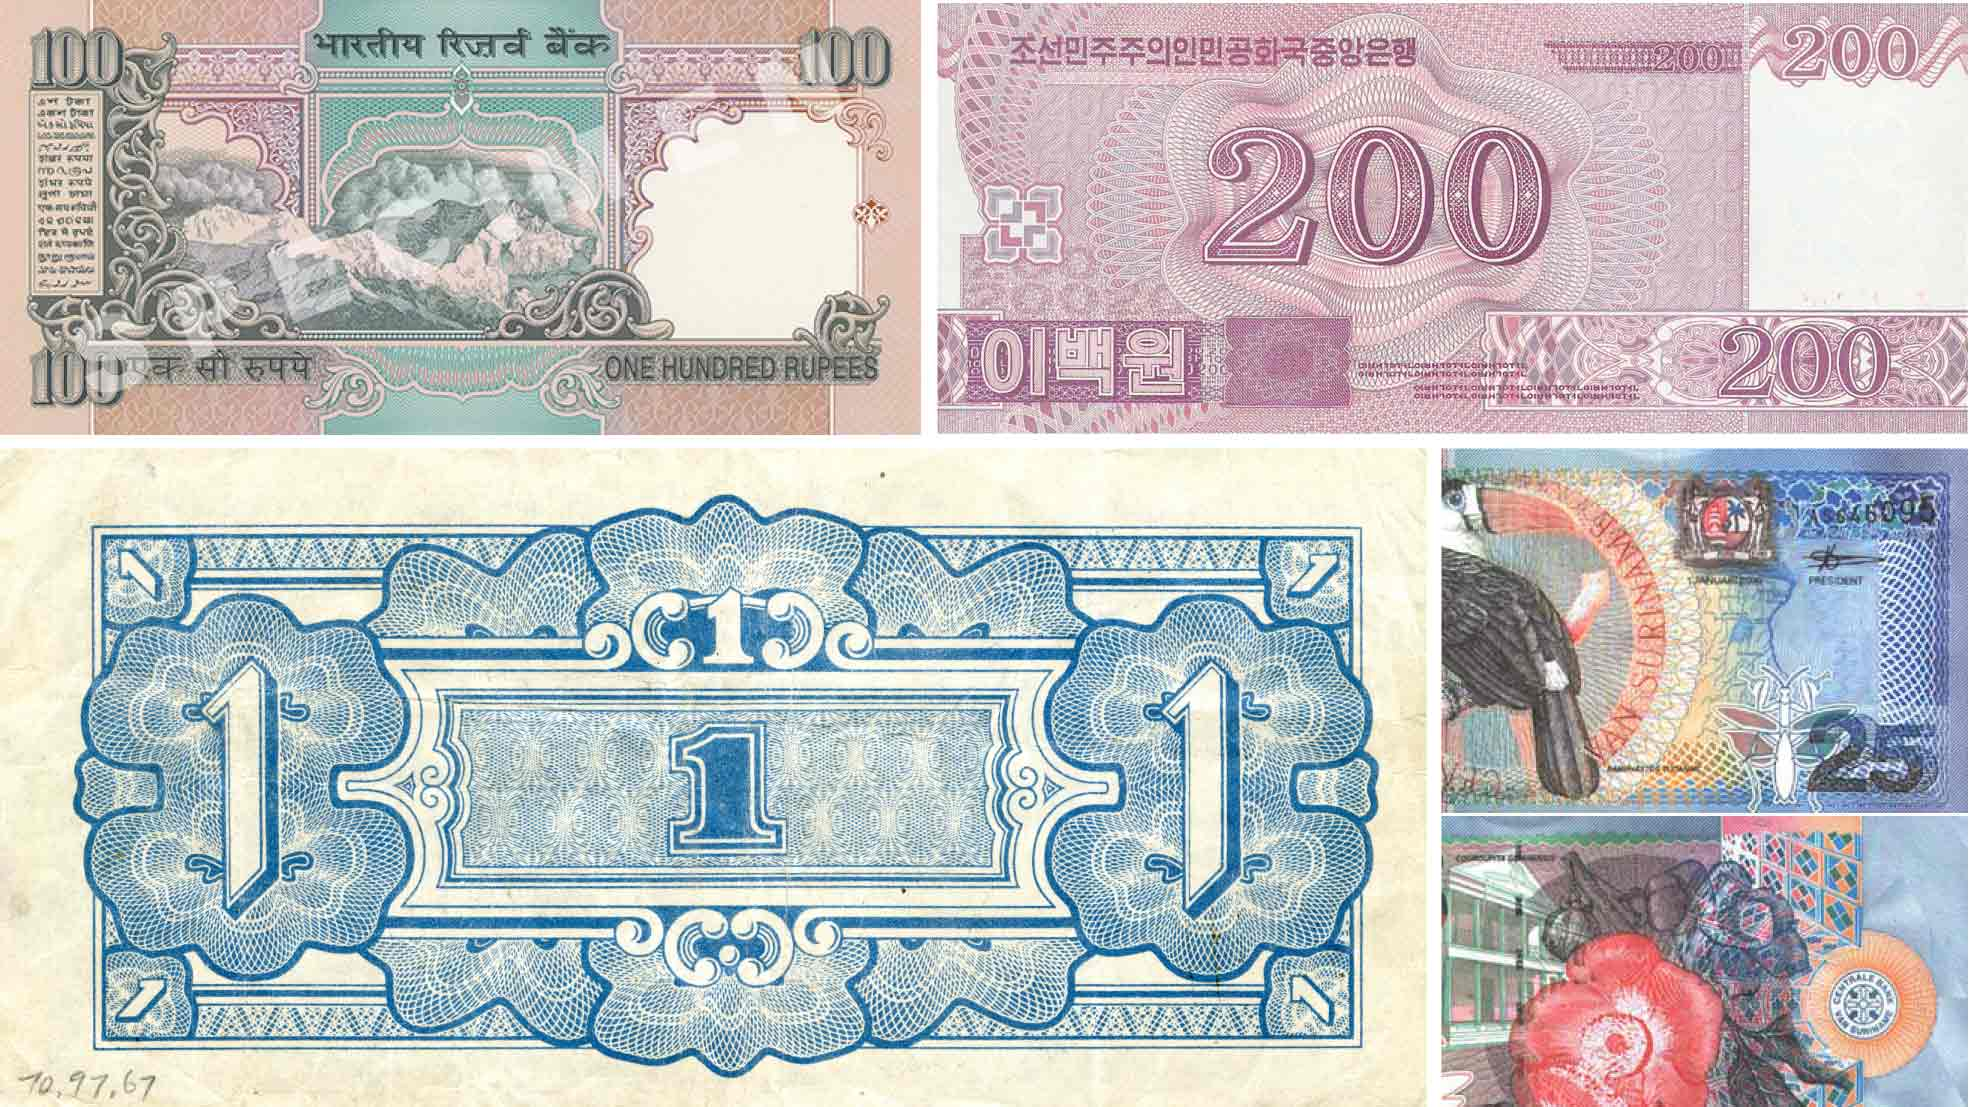 Some foreign currency with great guilloches I used as inspiration for the rebrand.